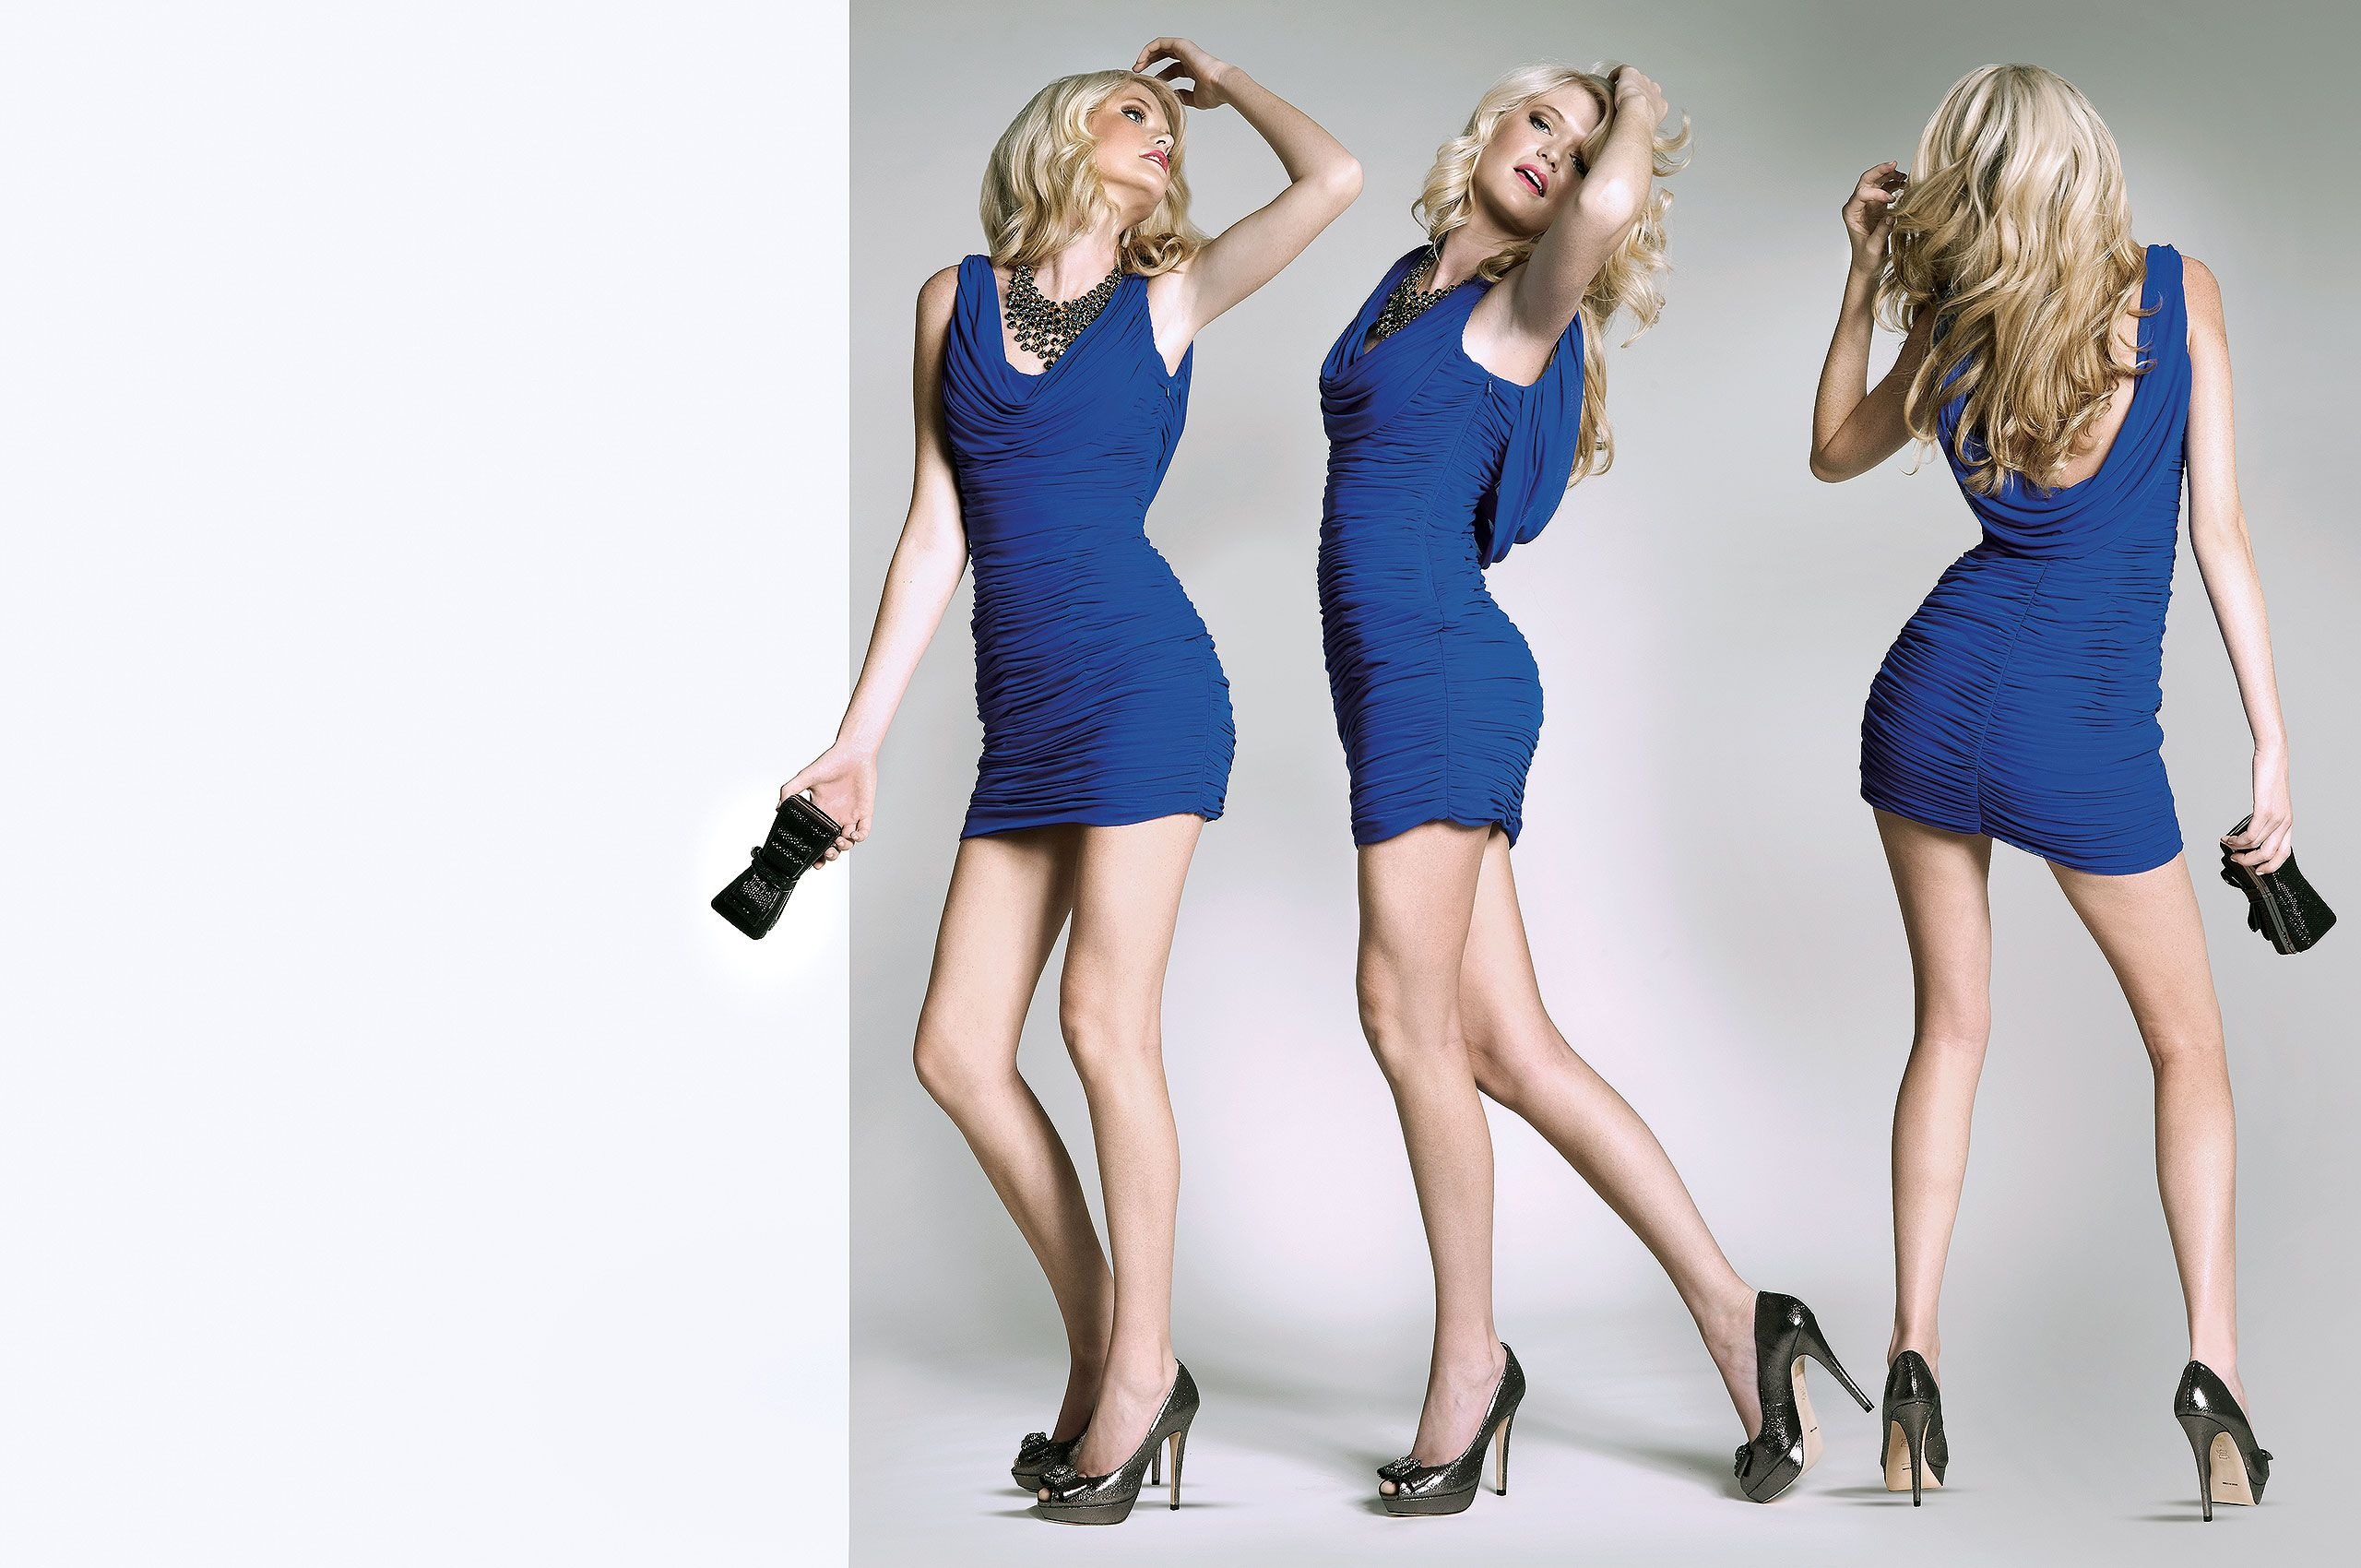 Taylor-Blue-Dress-Composite_02.jpg